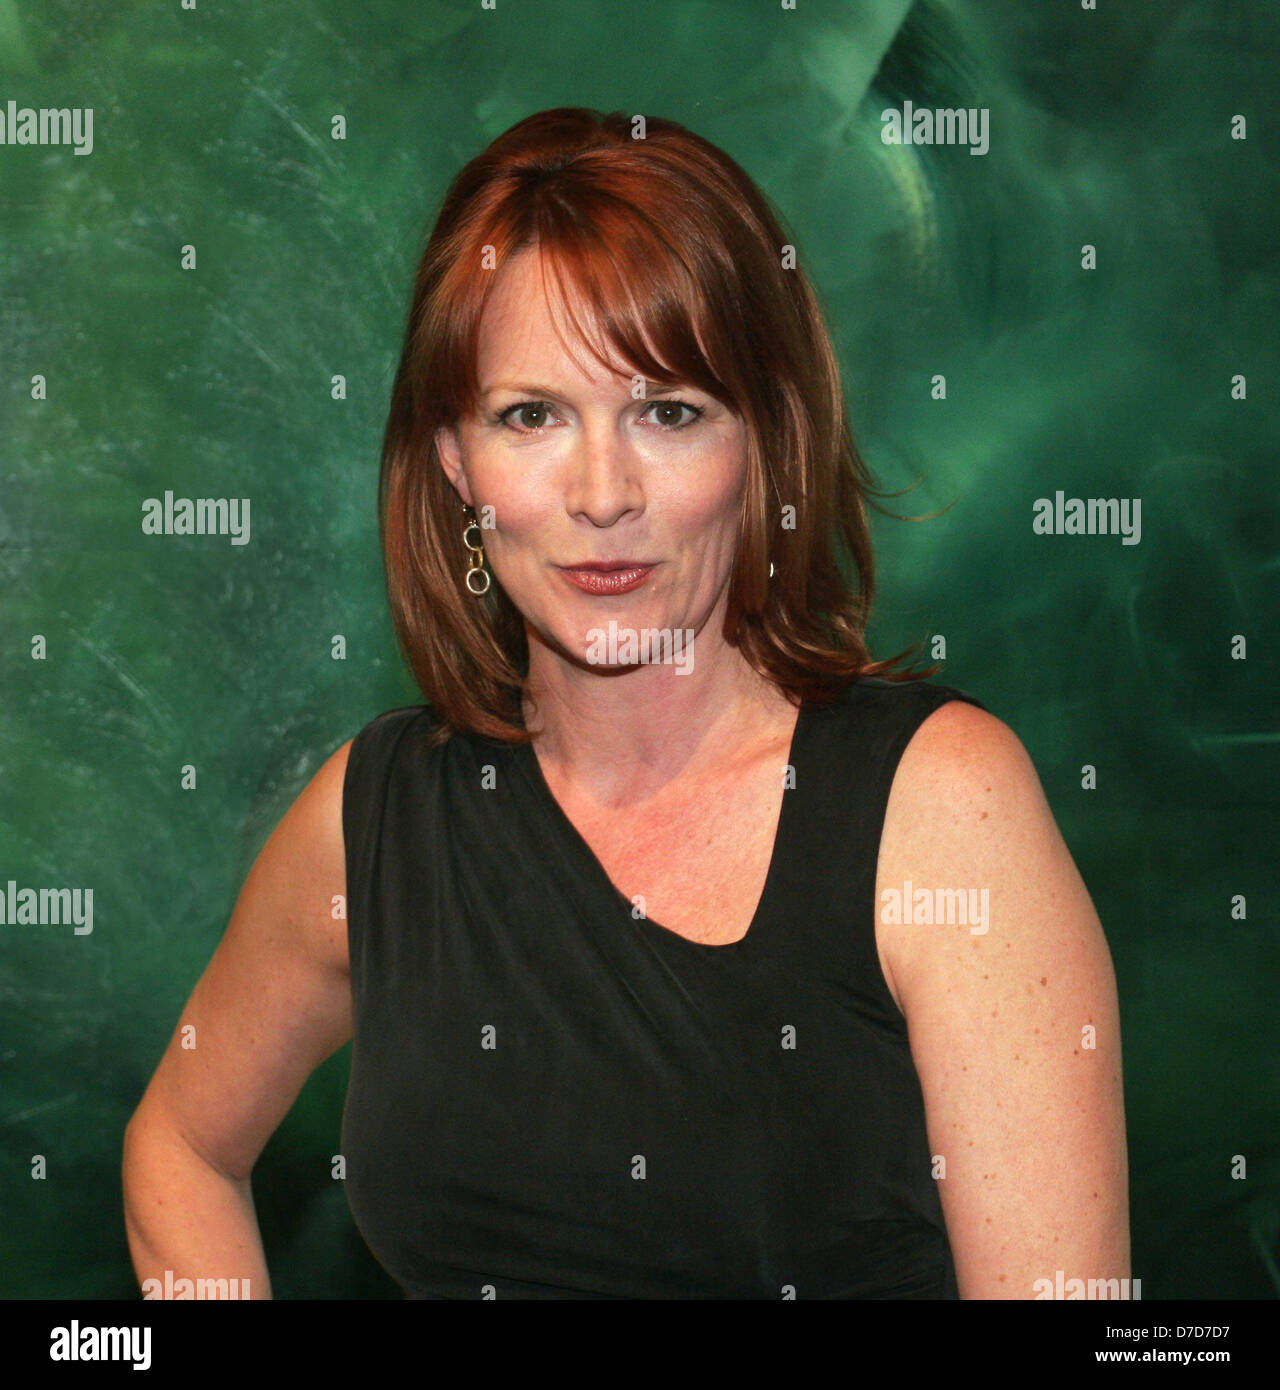 Laurel Holloman Laurel Holloman new pics